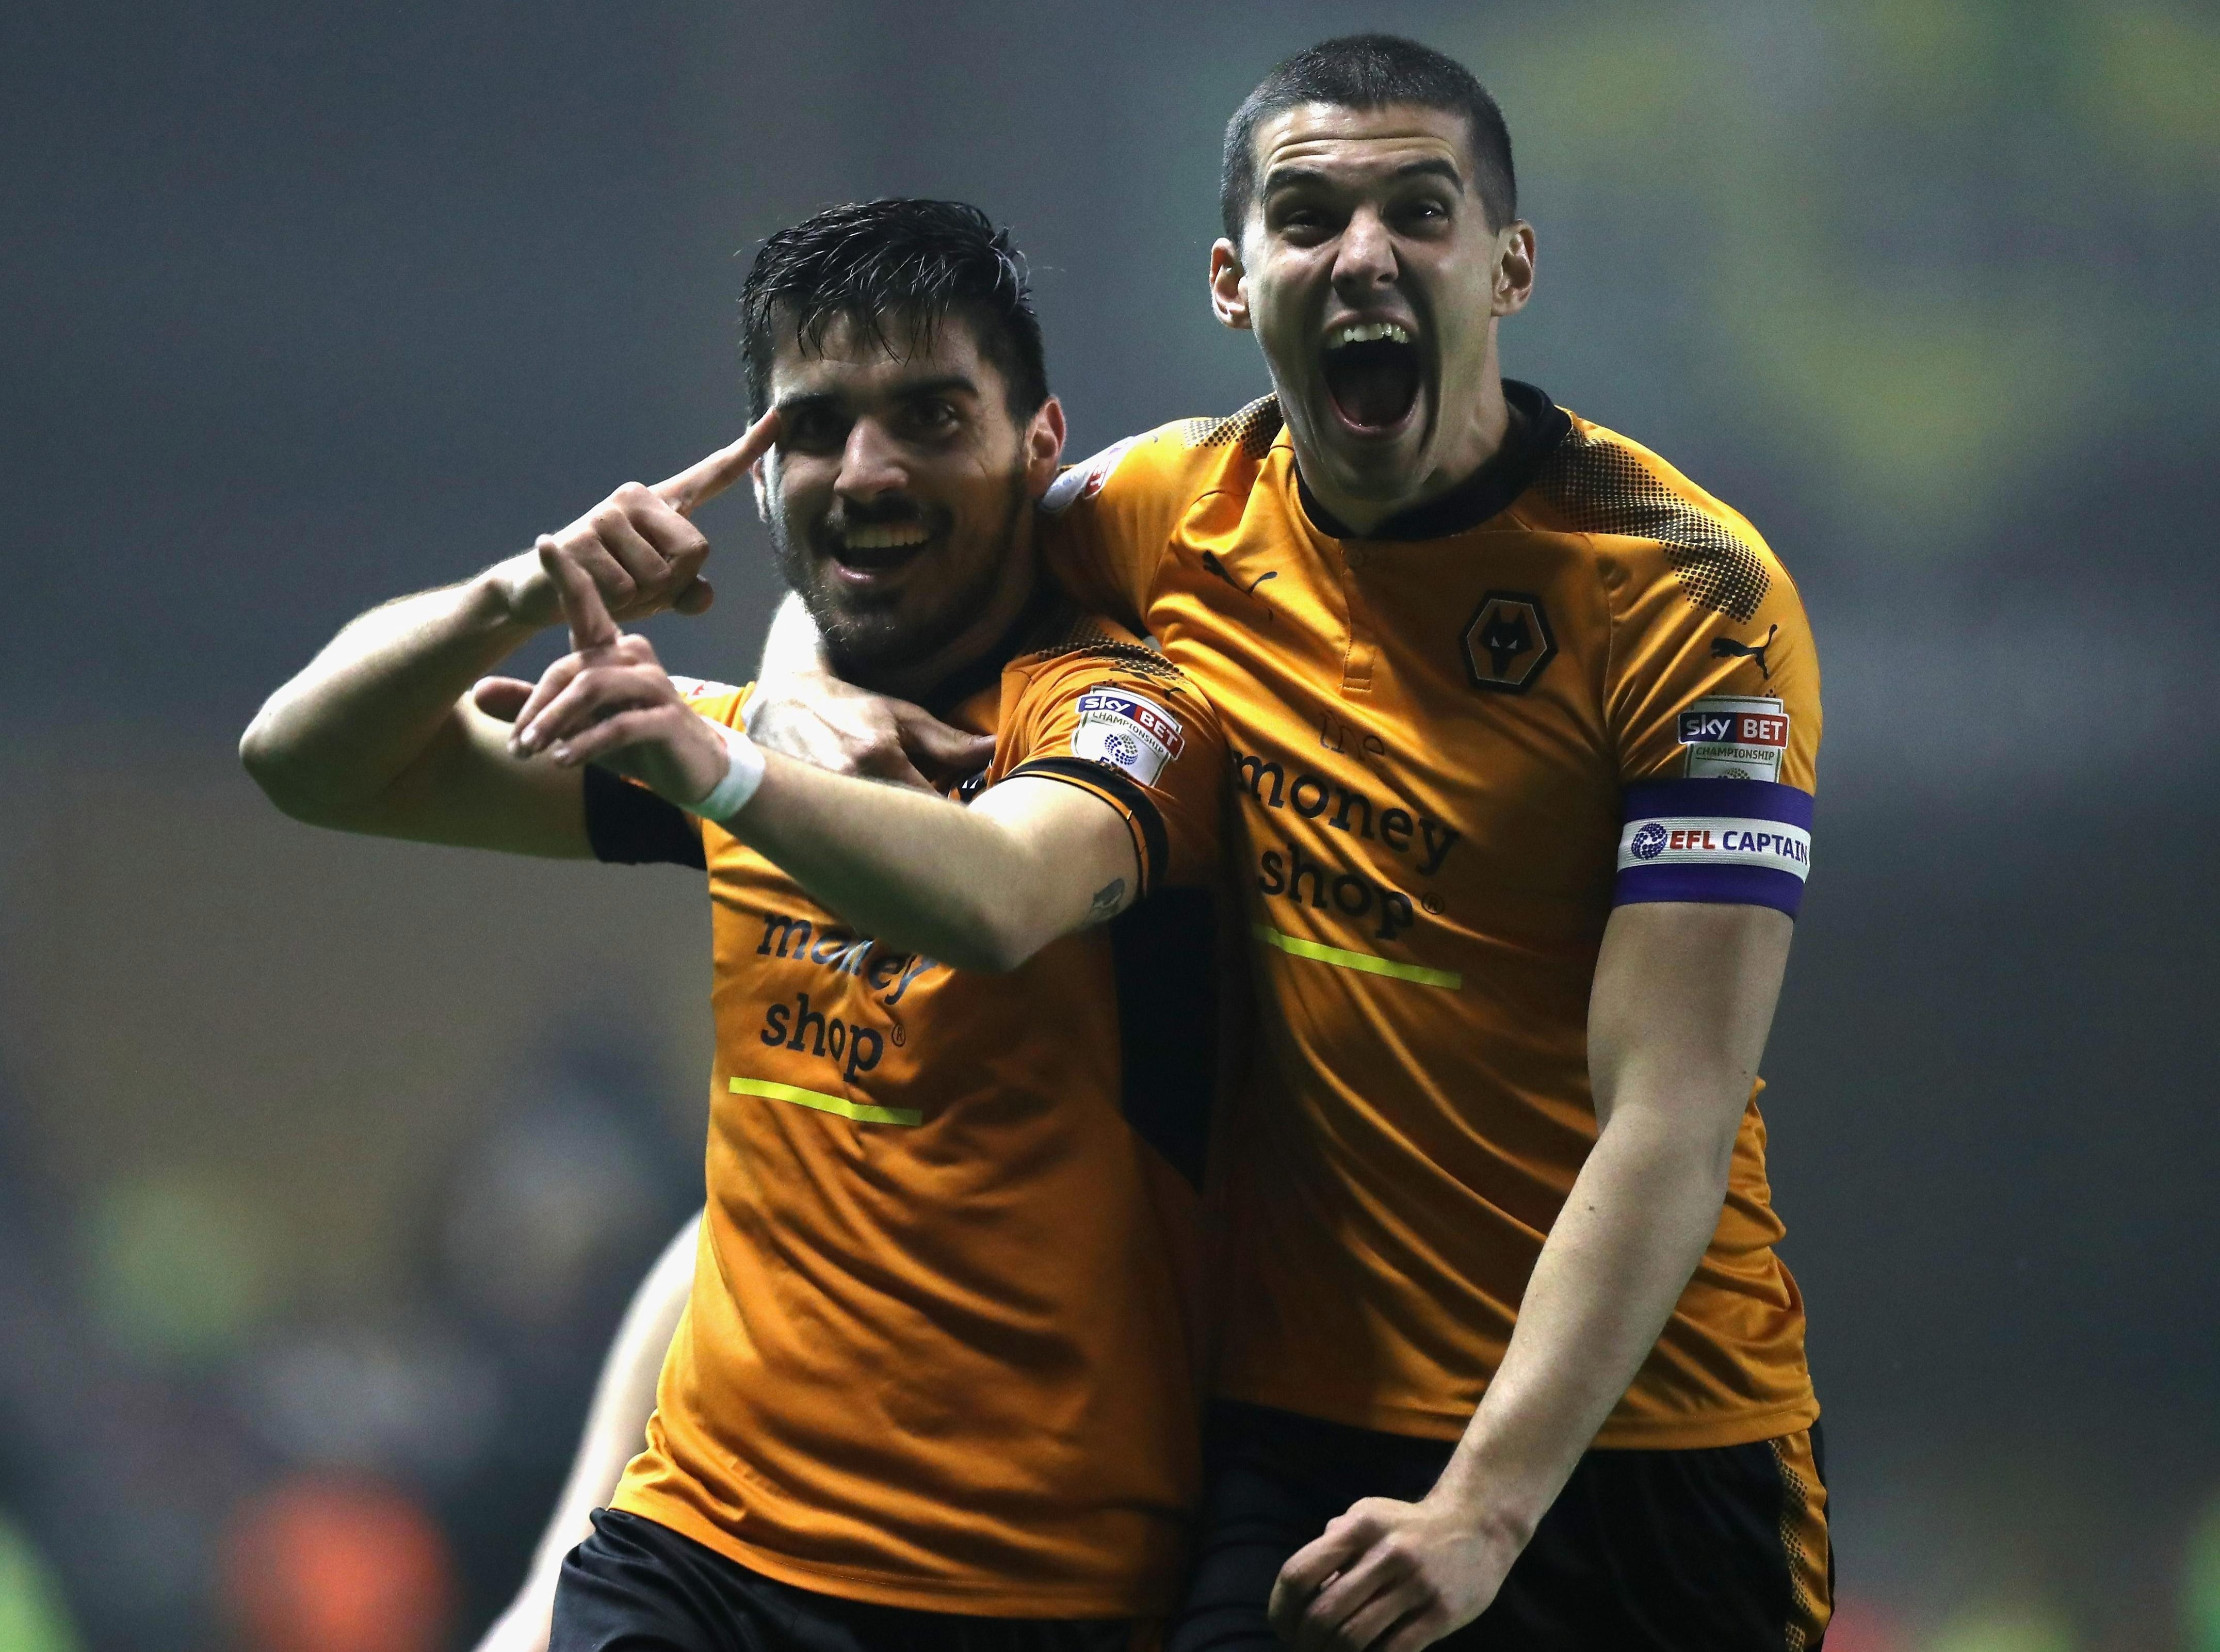 Who needs Gerrard when you've got Neves?